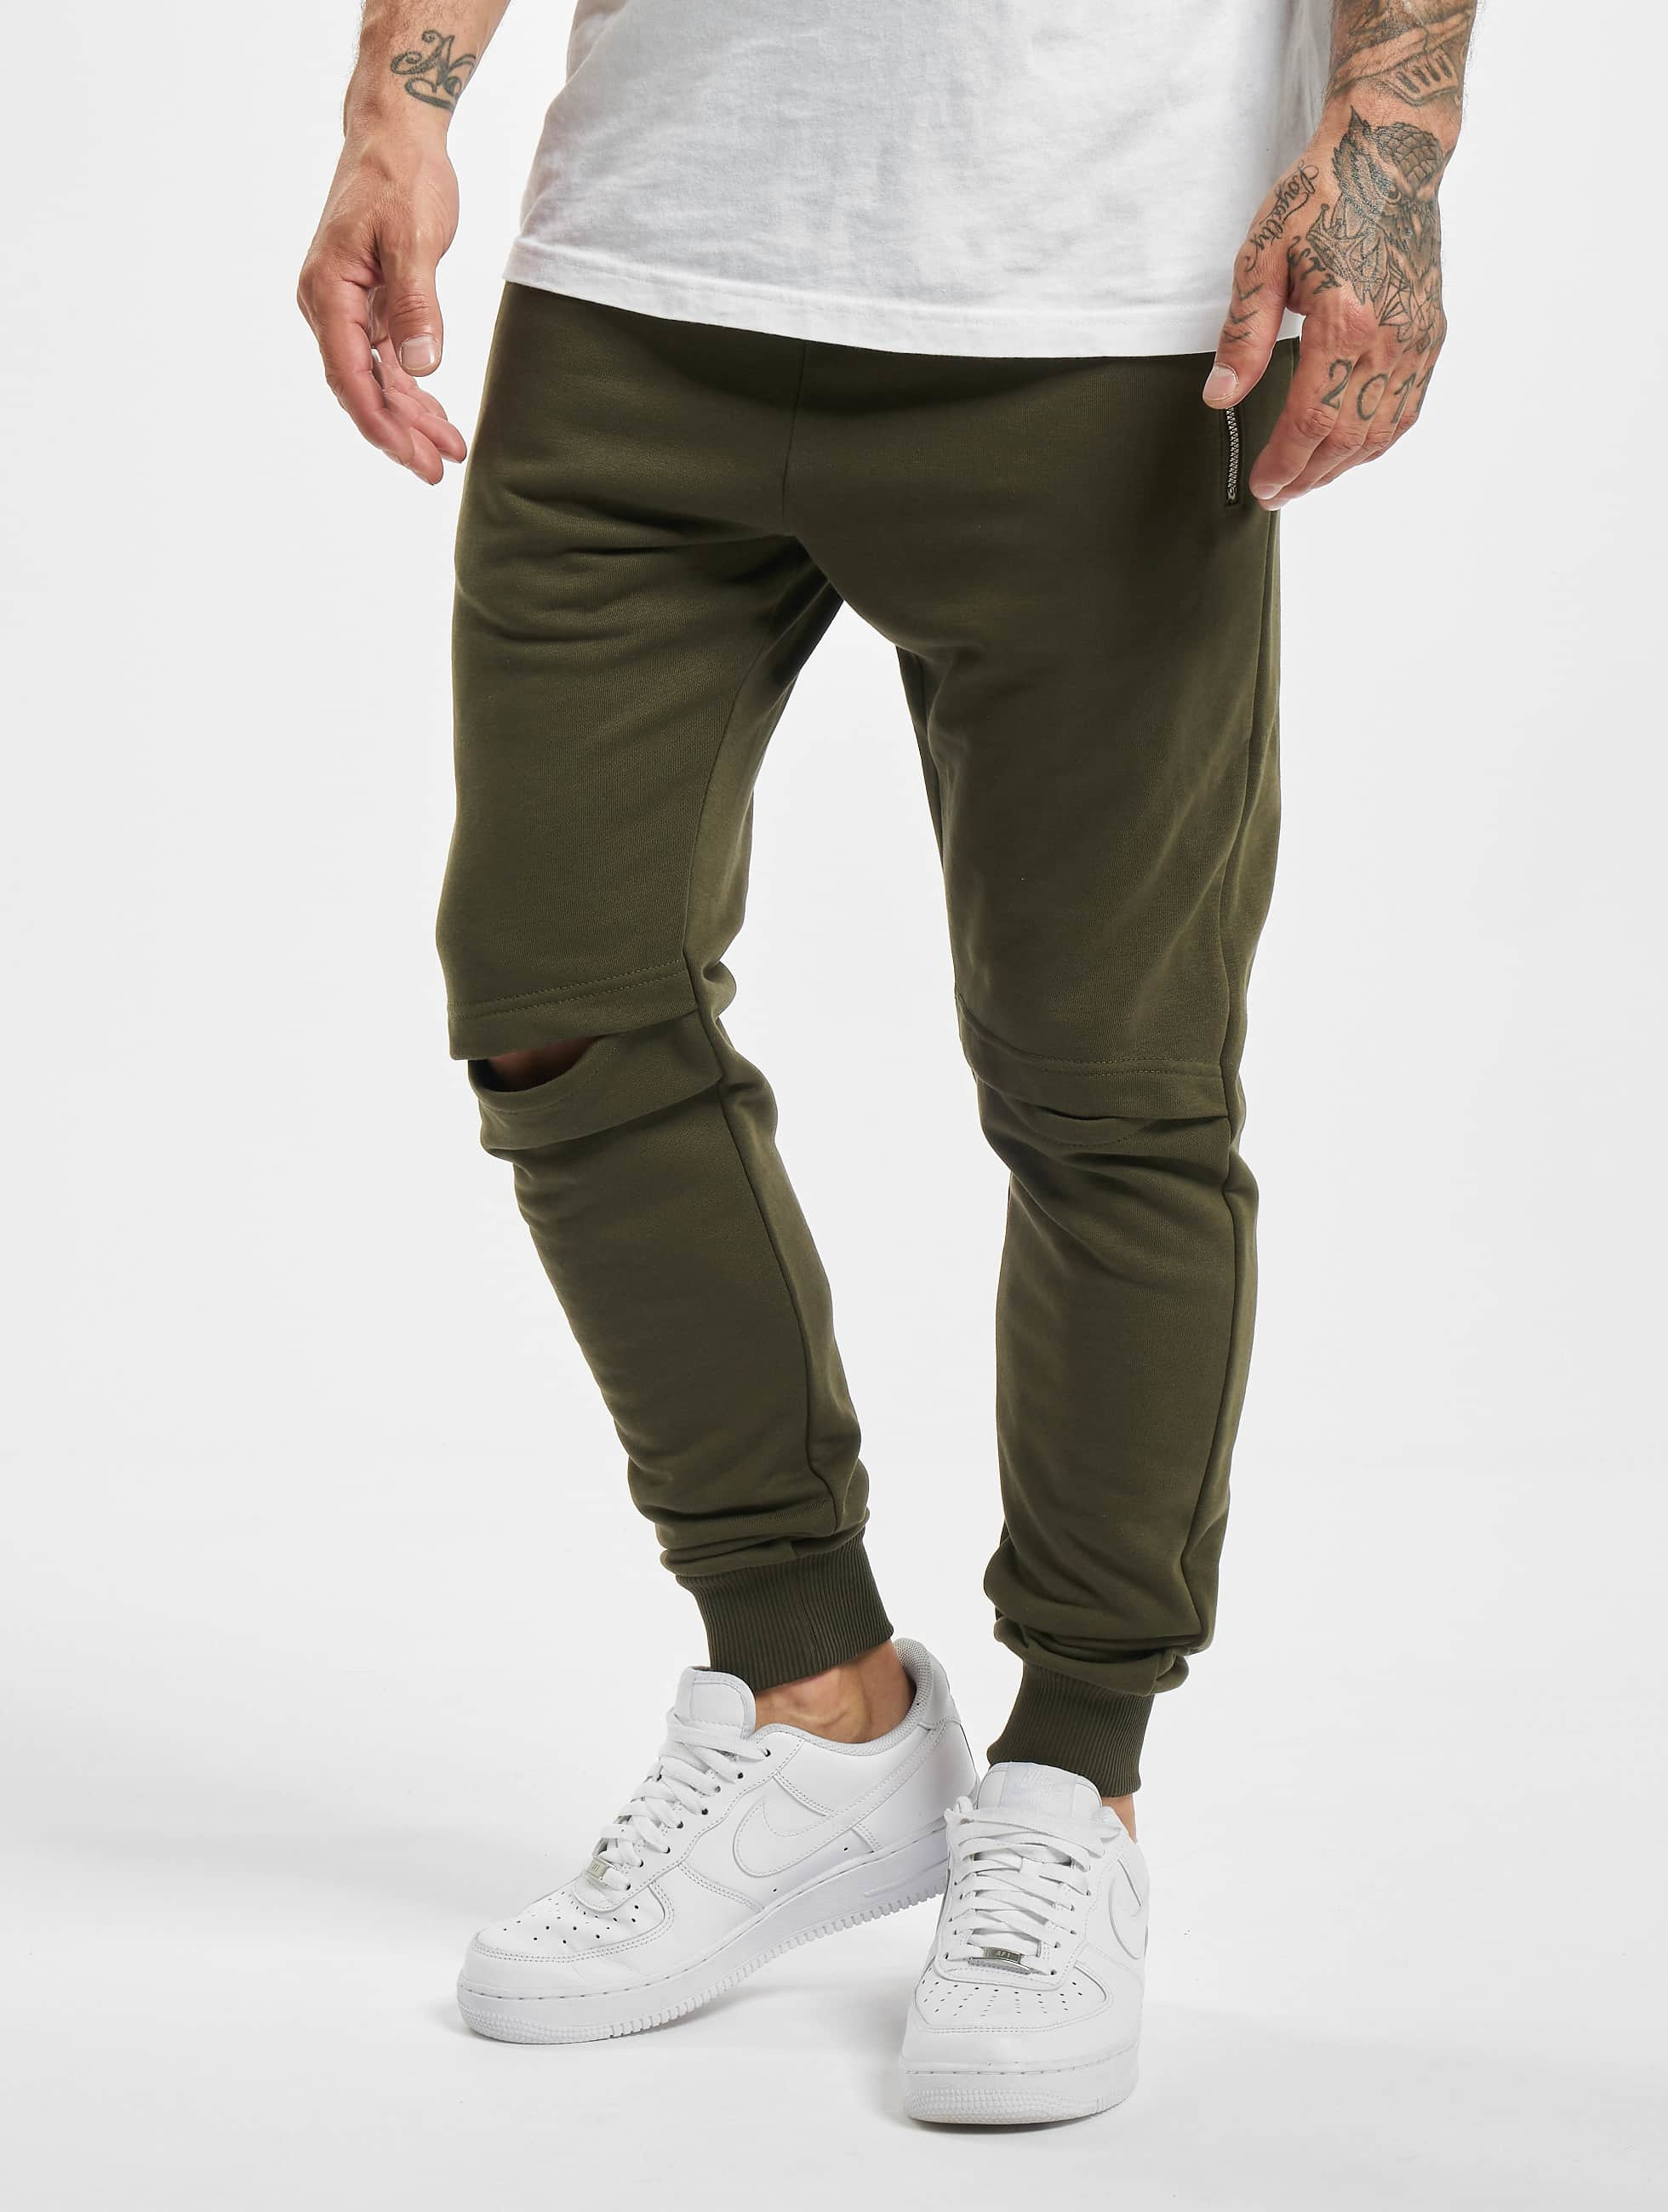 DEF / Sweat Pant Rider in olive S